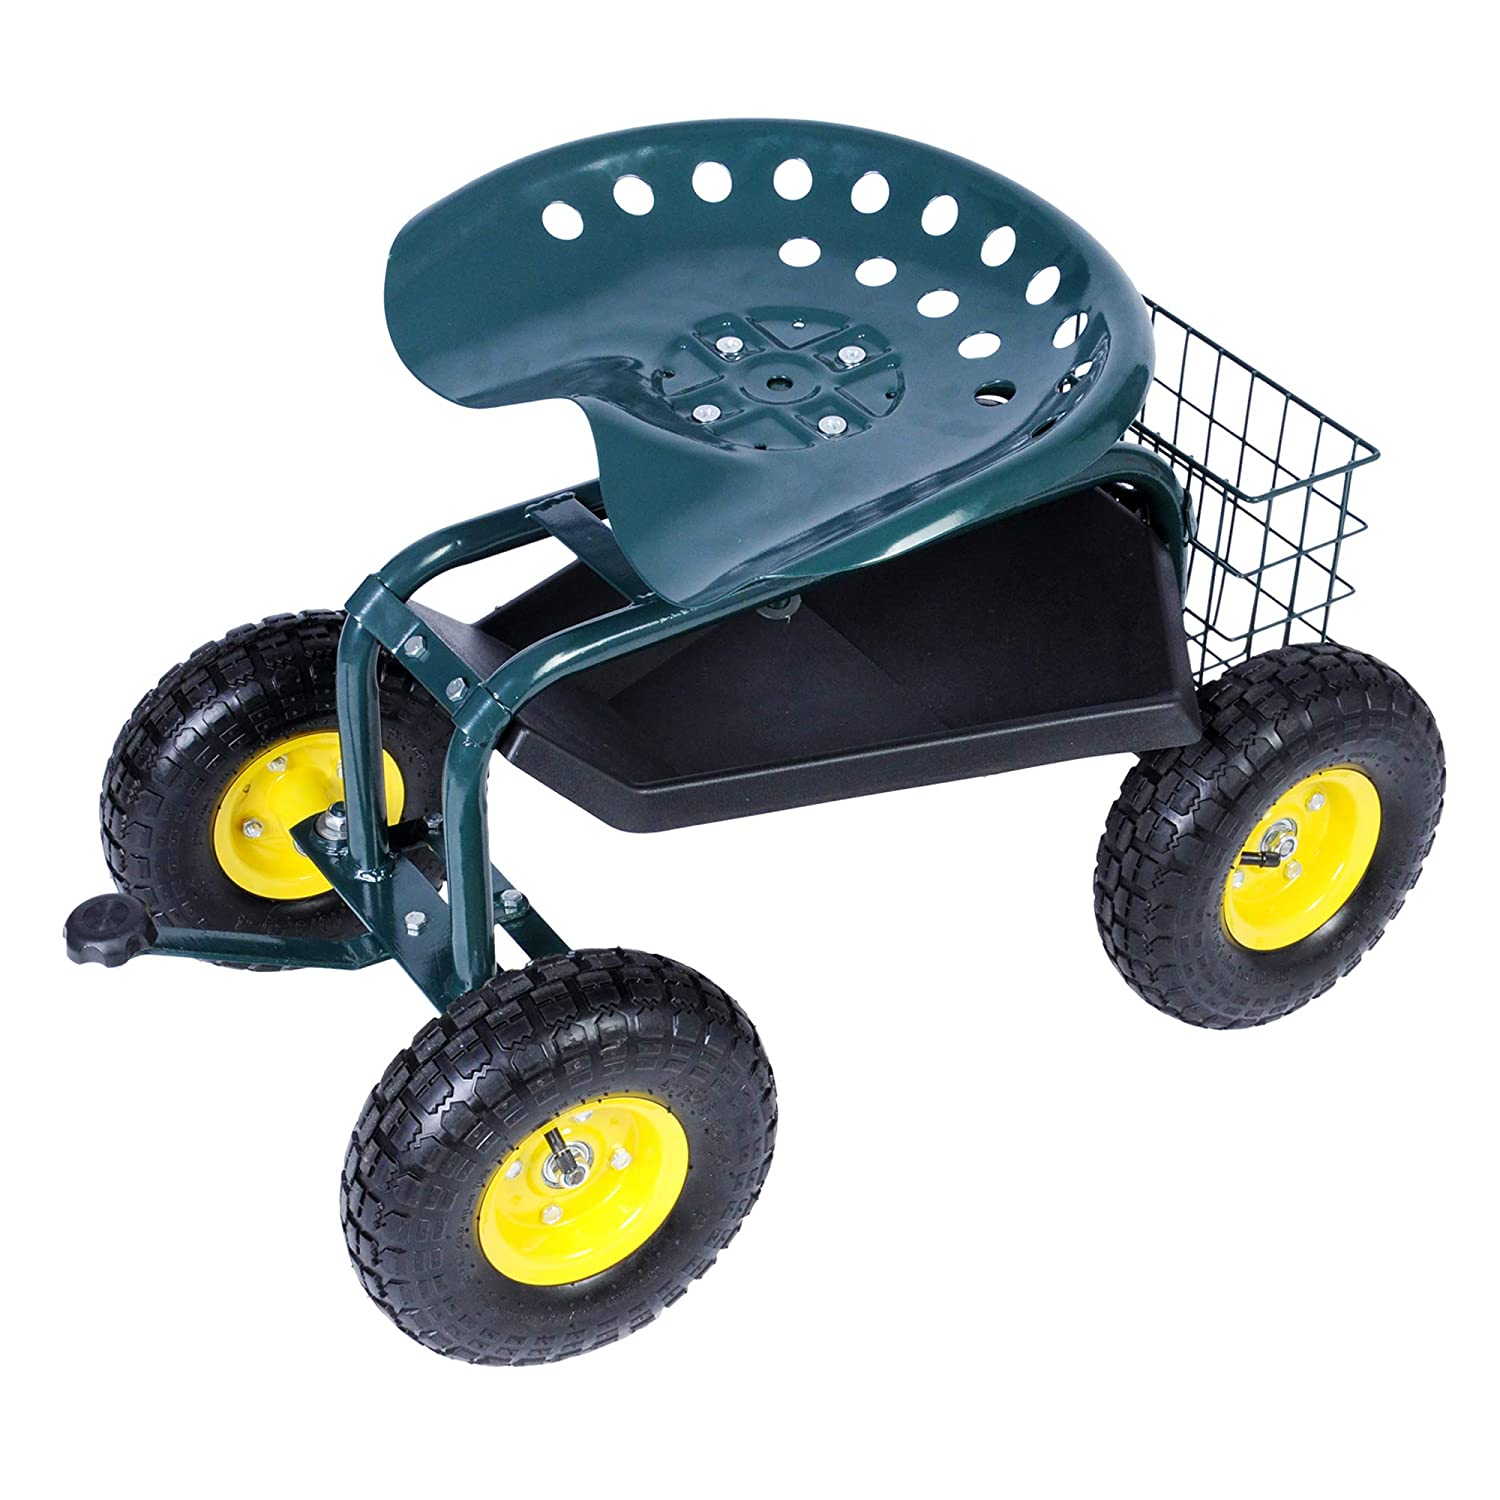 KARMAS PRODUCT Steerable Rolling Work SeatGarden Stool Cart with Tool Trayand Storage Basket Heavy Duty Scooter Green